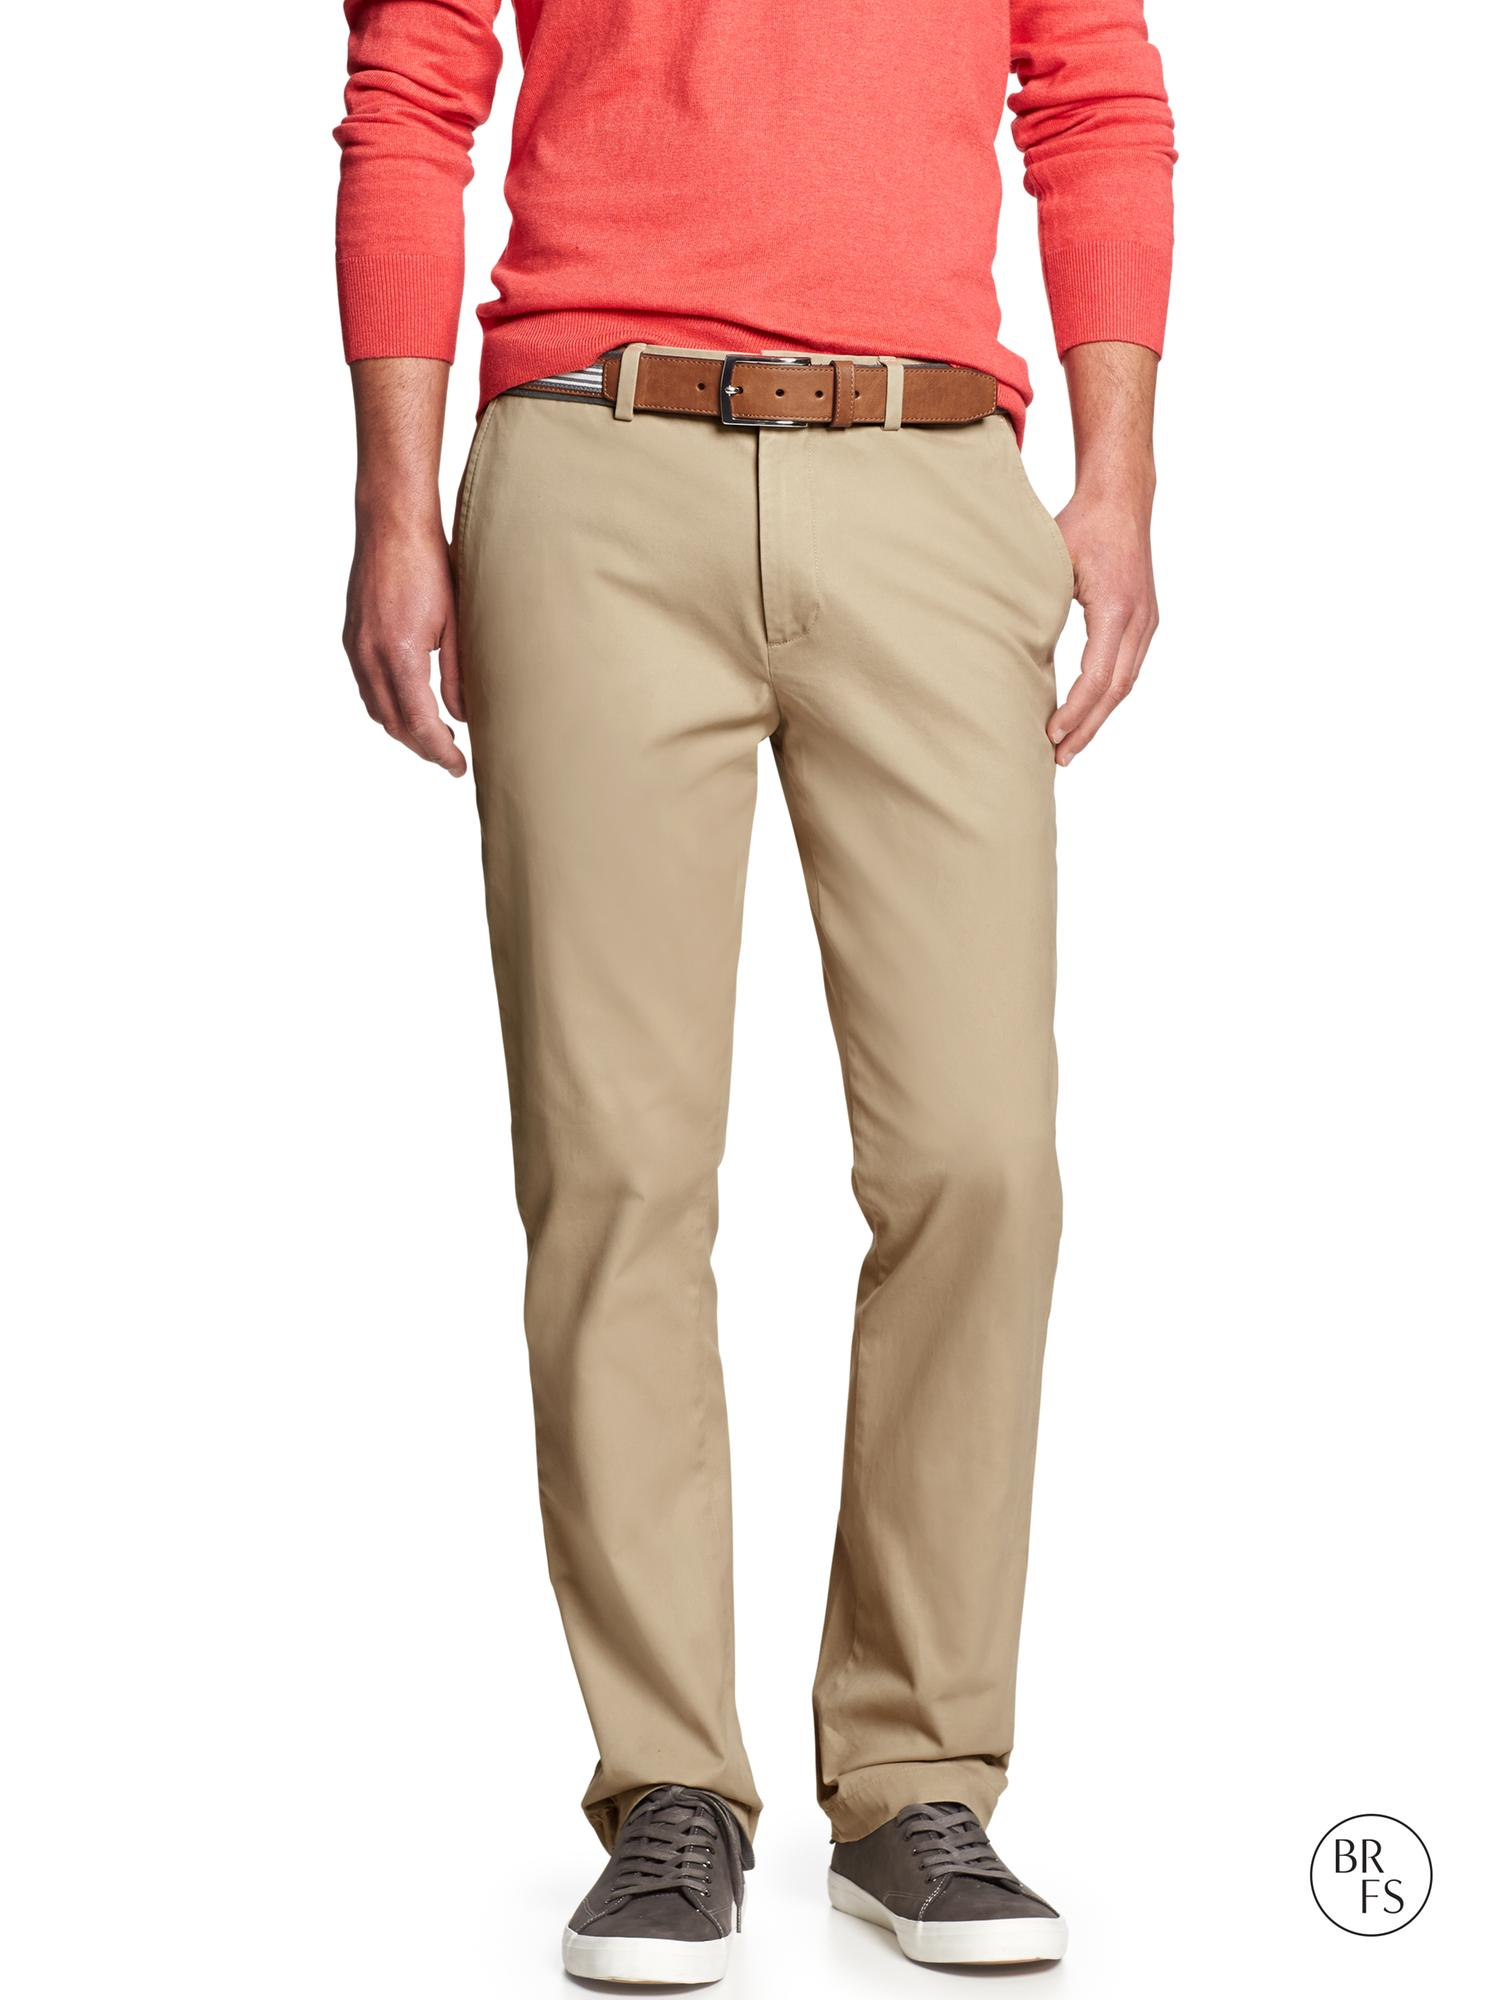 Banana Republic Factory Aiden Fit Chino In Beige For Men